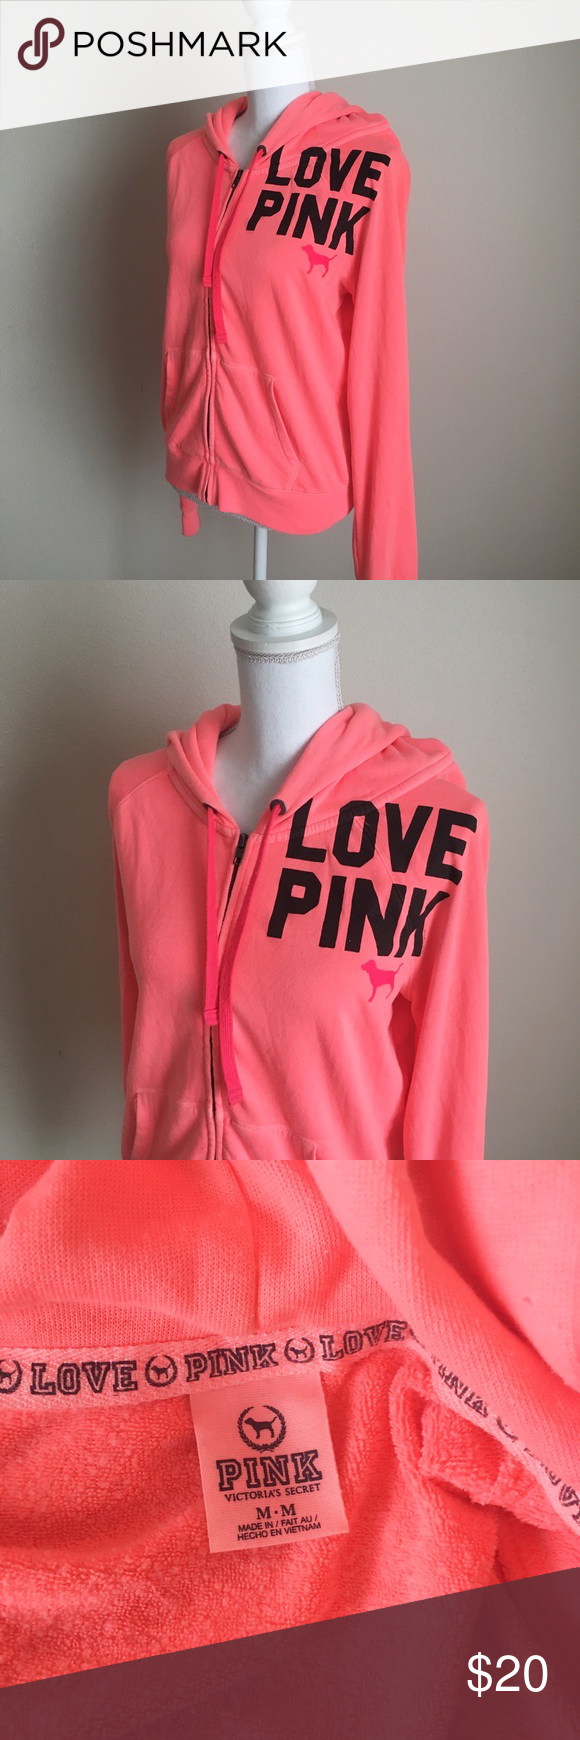 VS PINK Sweatshirt | vs Pink, Sweatshirt and Customer support